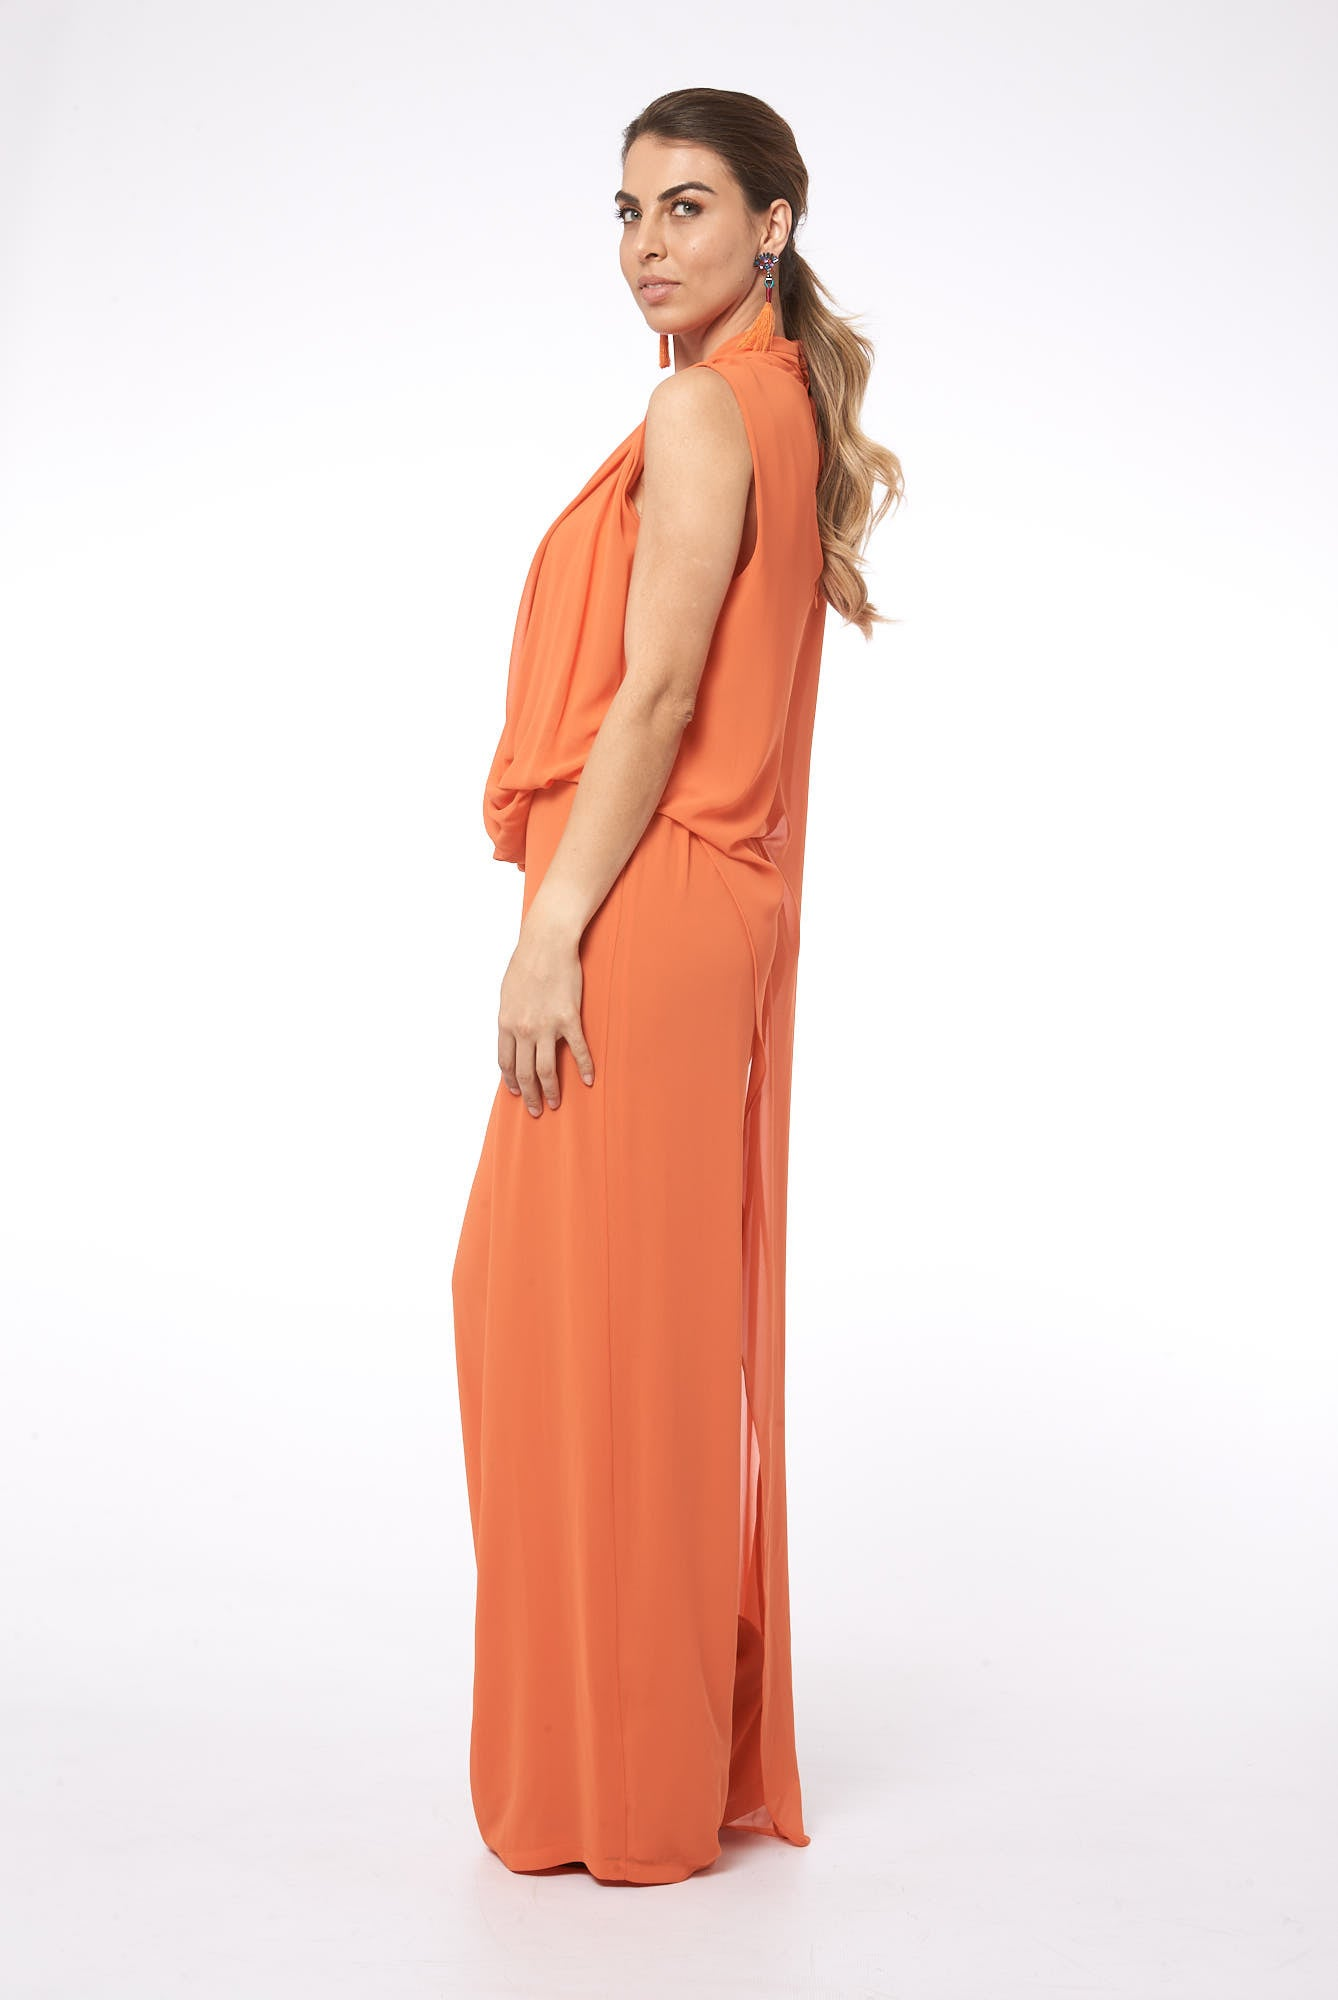 Cape It Together in Oslo Coral Jumpsuit